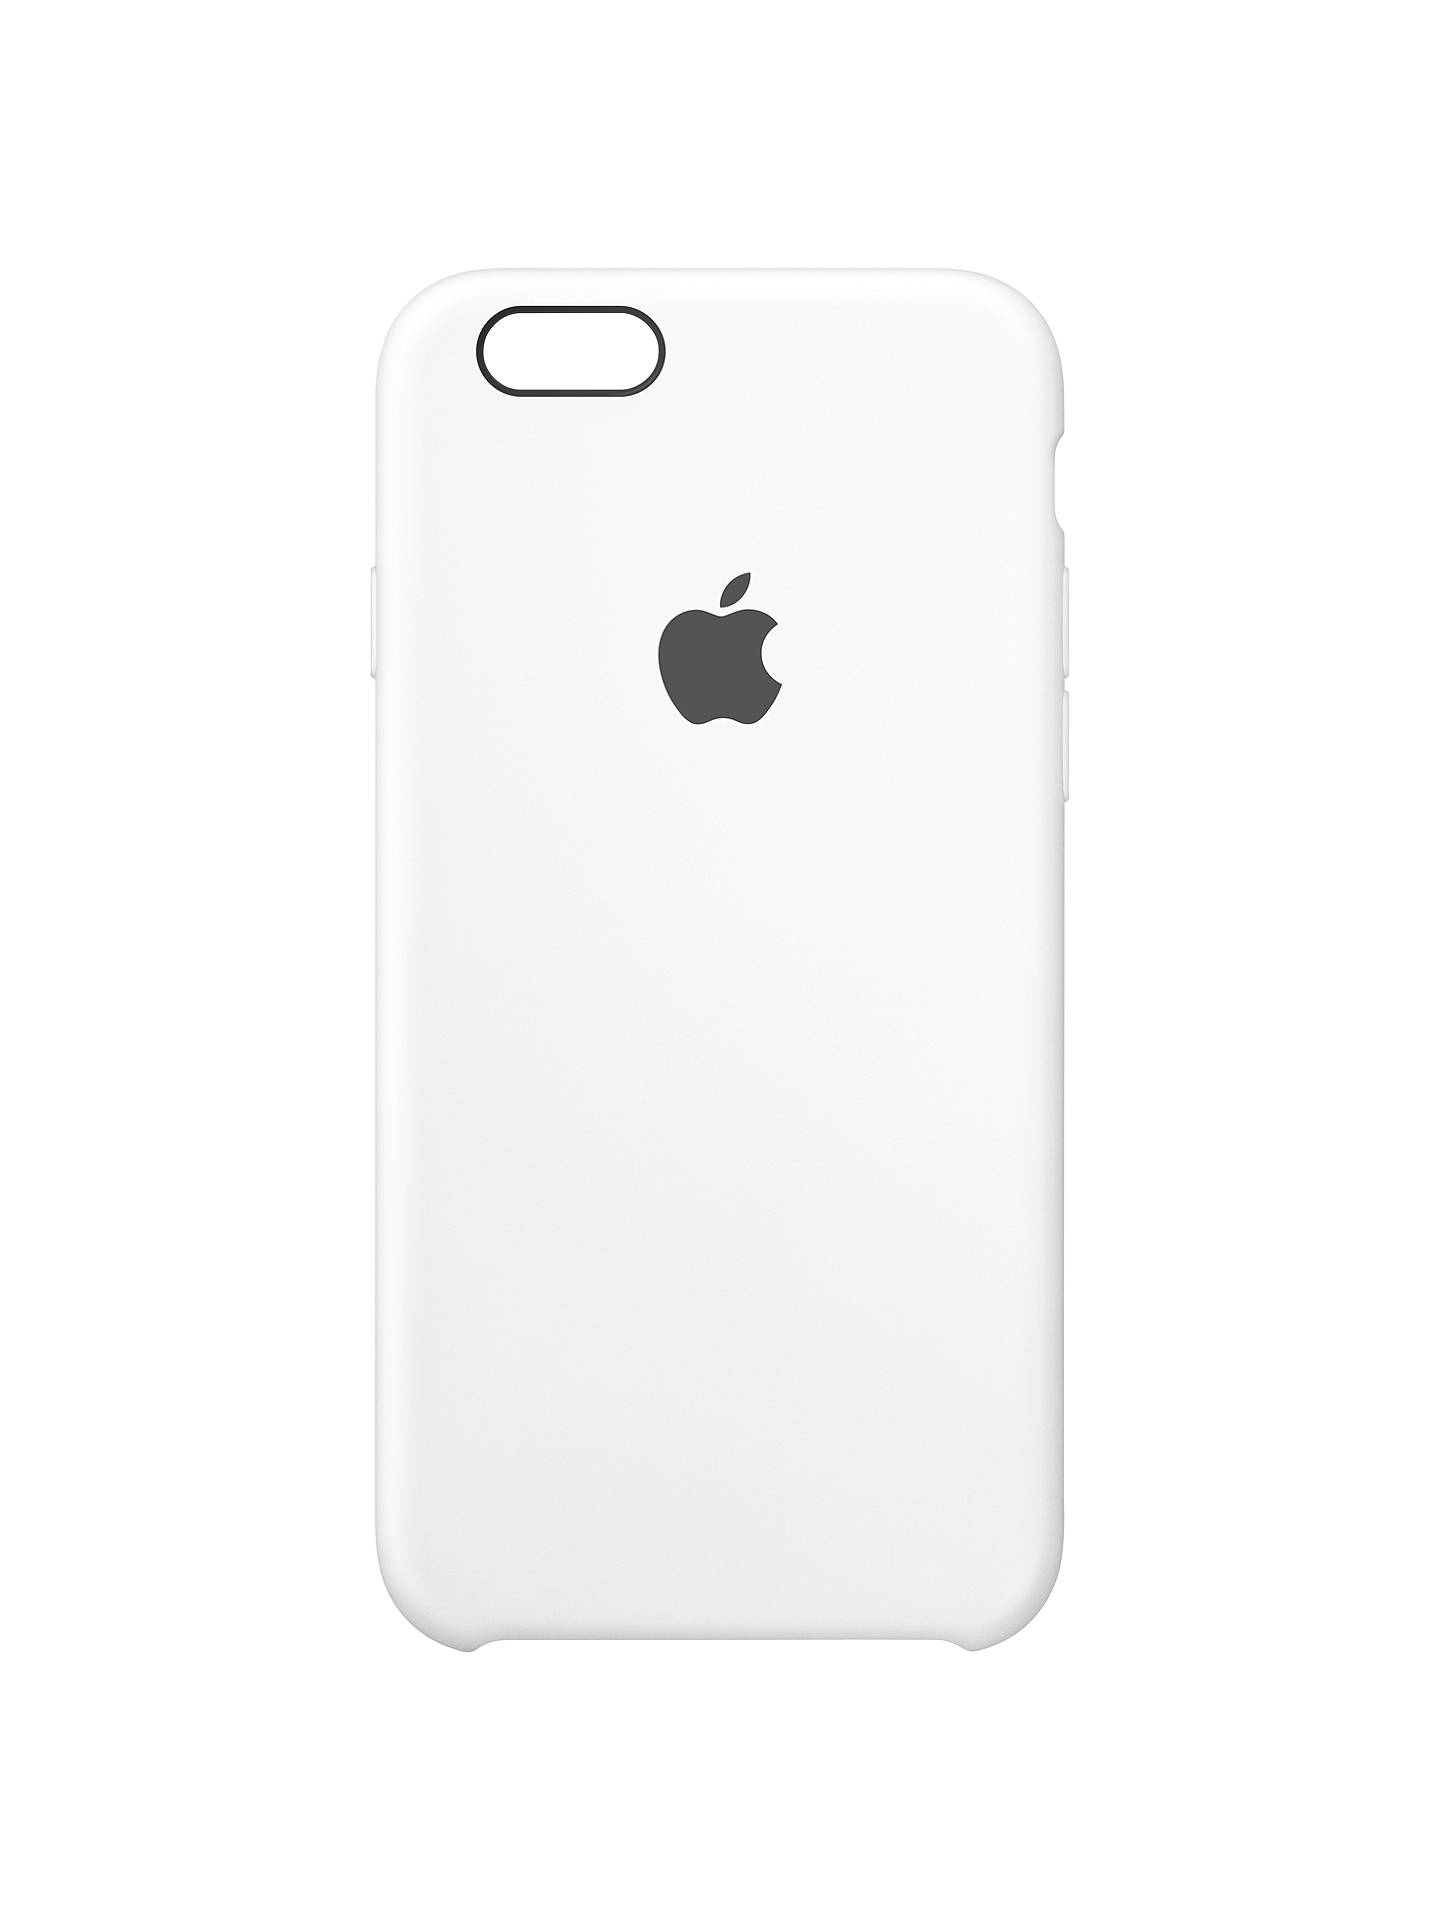 Buy Apple Silicone Case for iPhone 6/6s, White Online at johnlewis.com